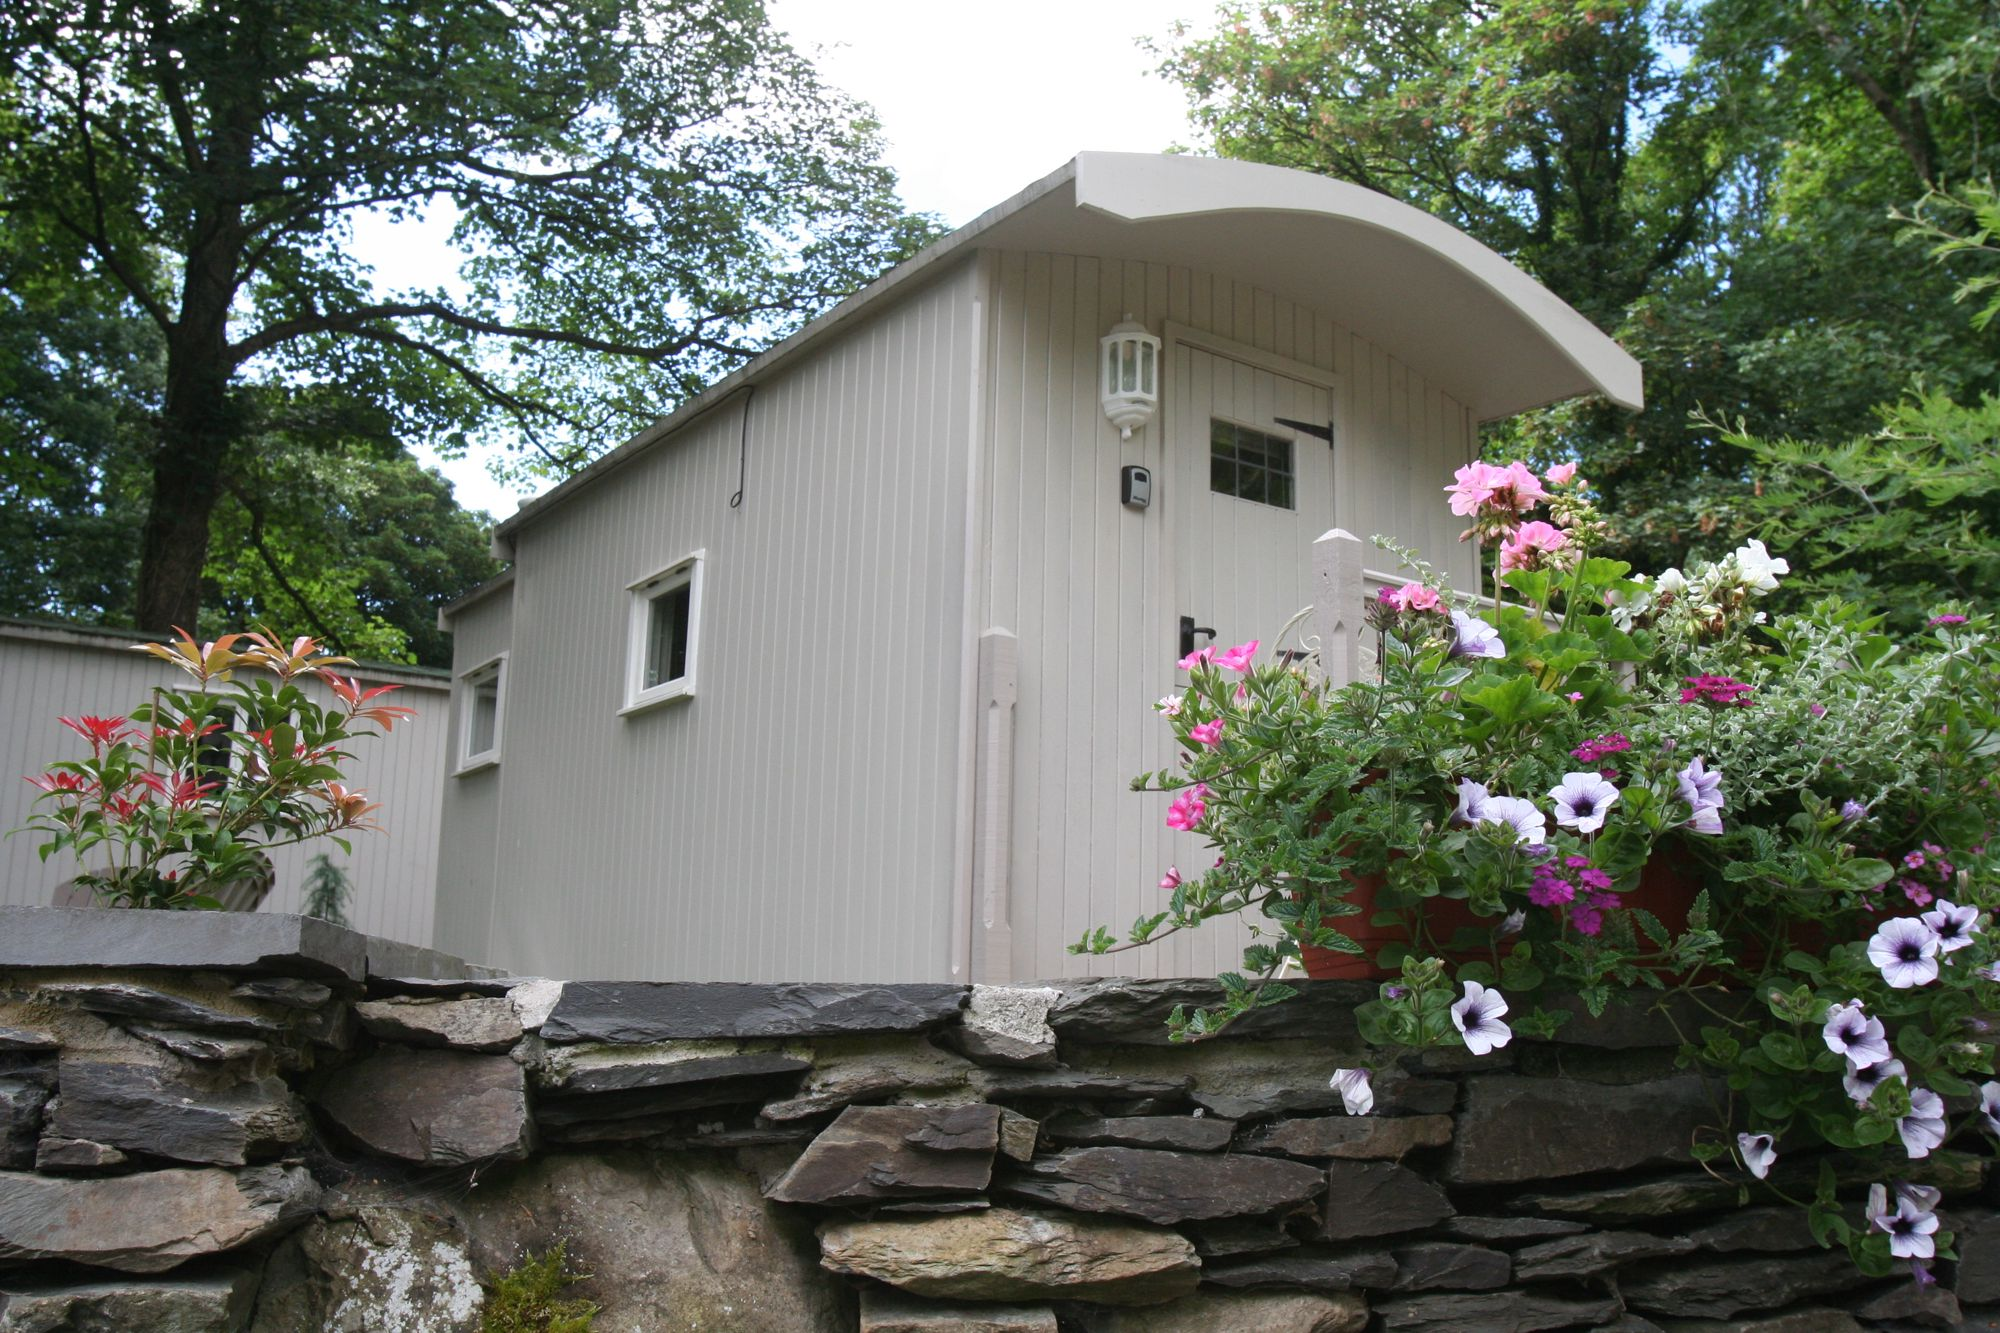 Beautiful handmade shepherd's huts in the heart of the picturesque South Lakes.